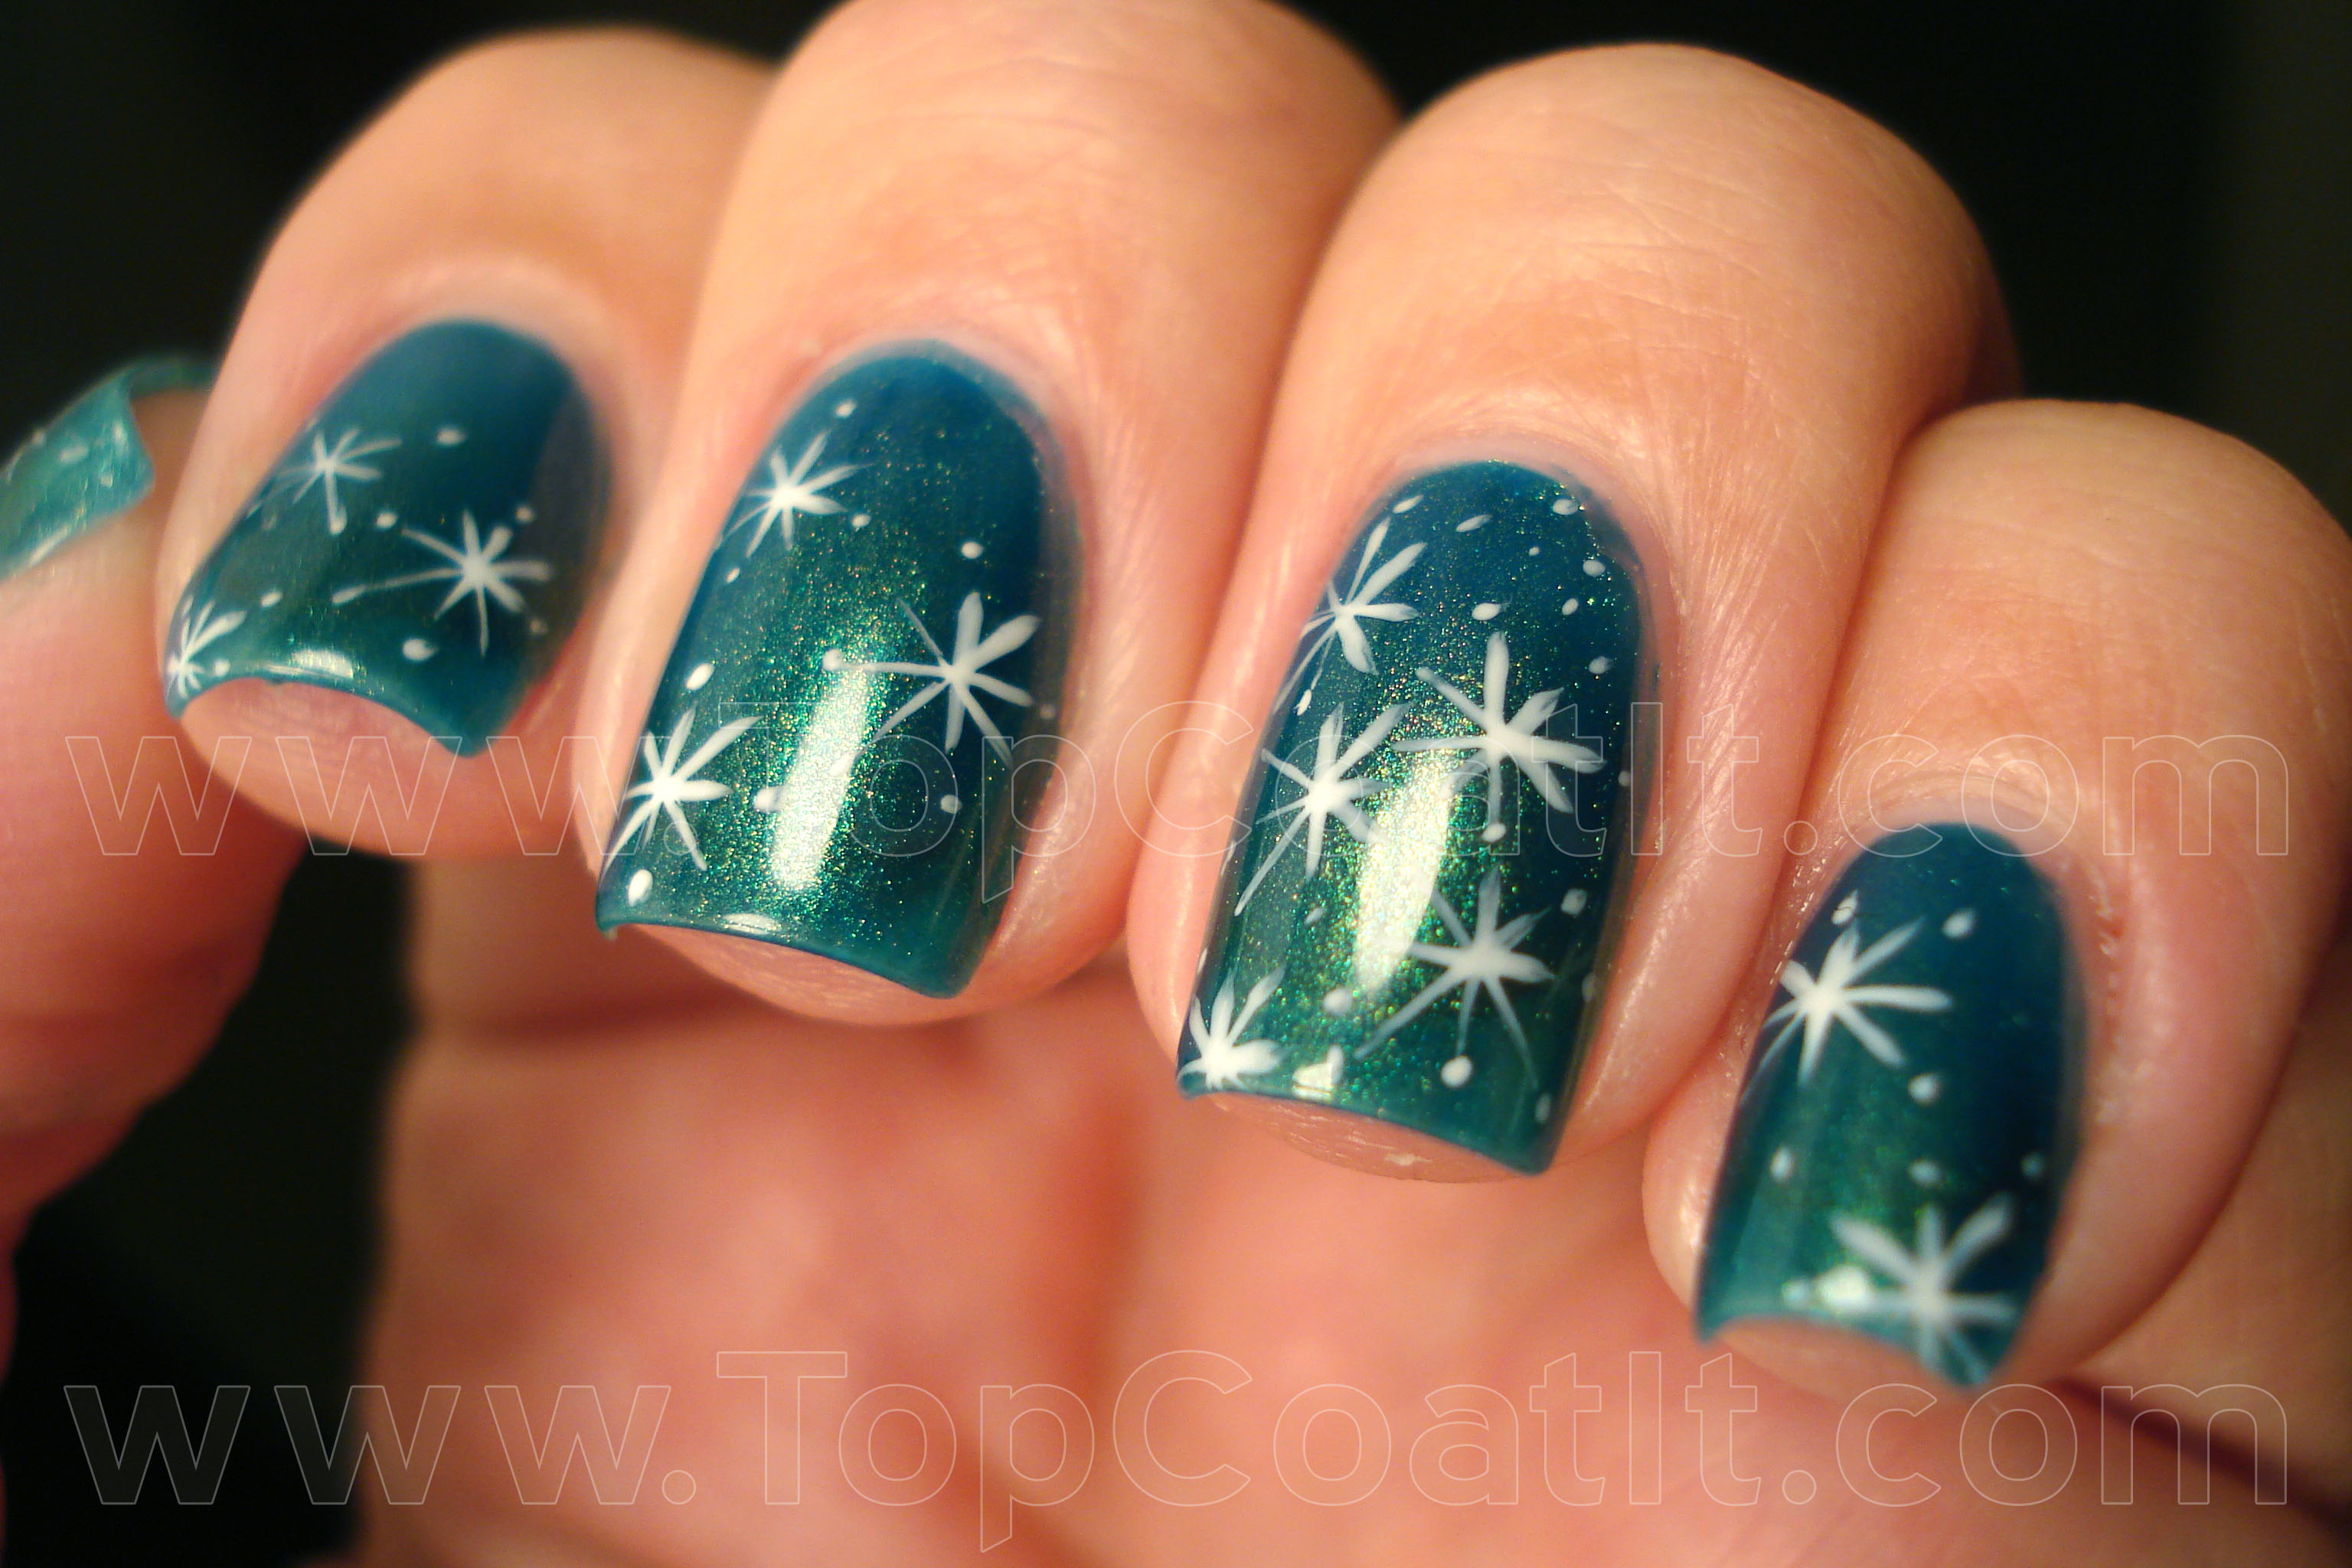 Let it snow on your nails 20 snowflake nail arts source snowflake 3 wlcopy prinsesfo Image collections